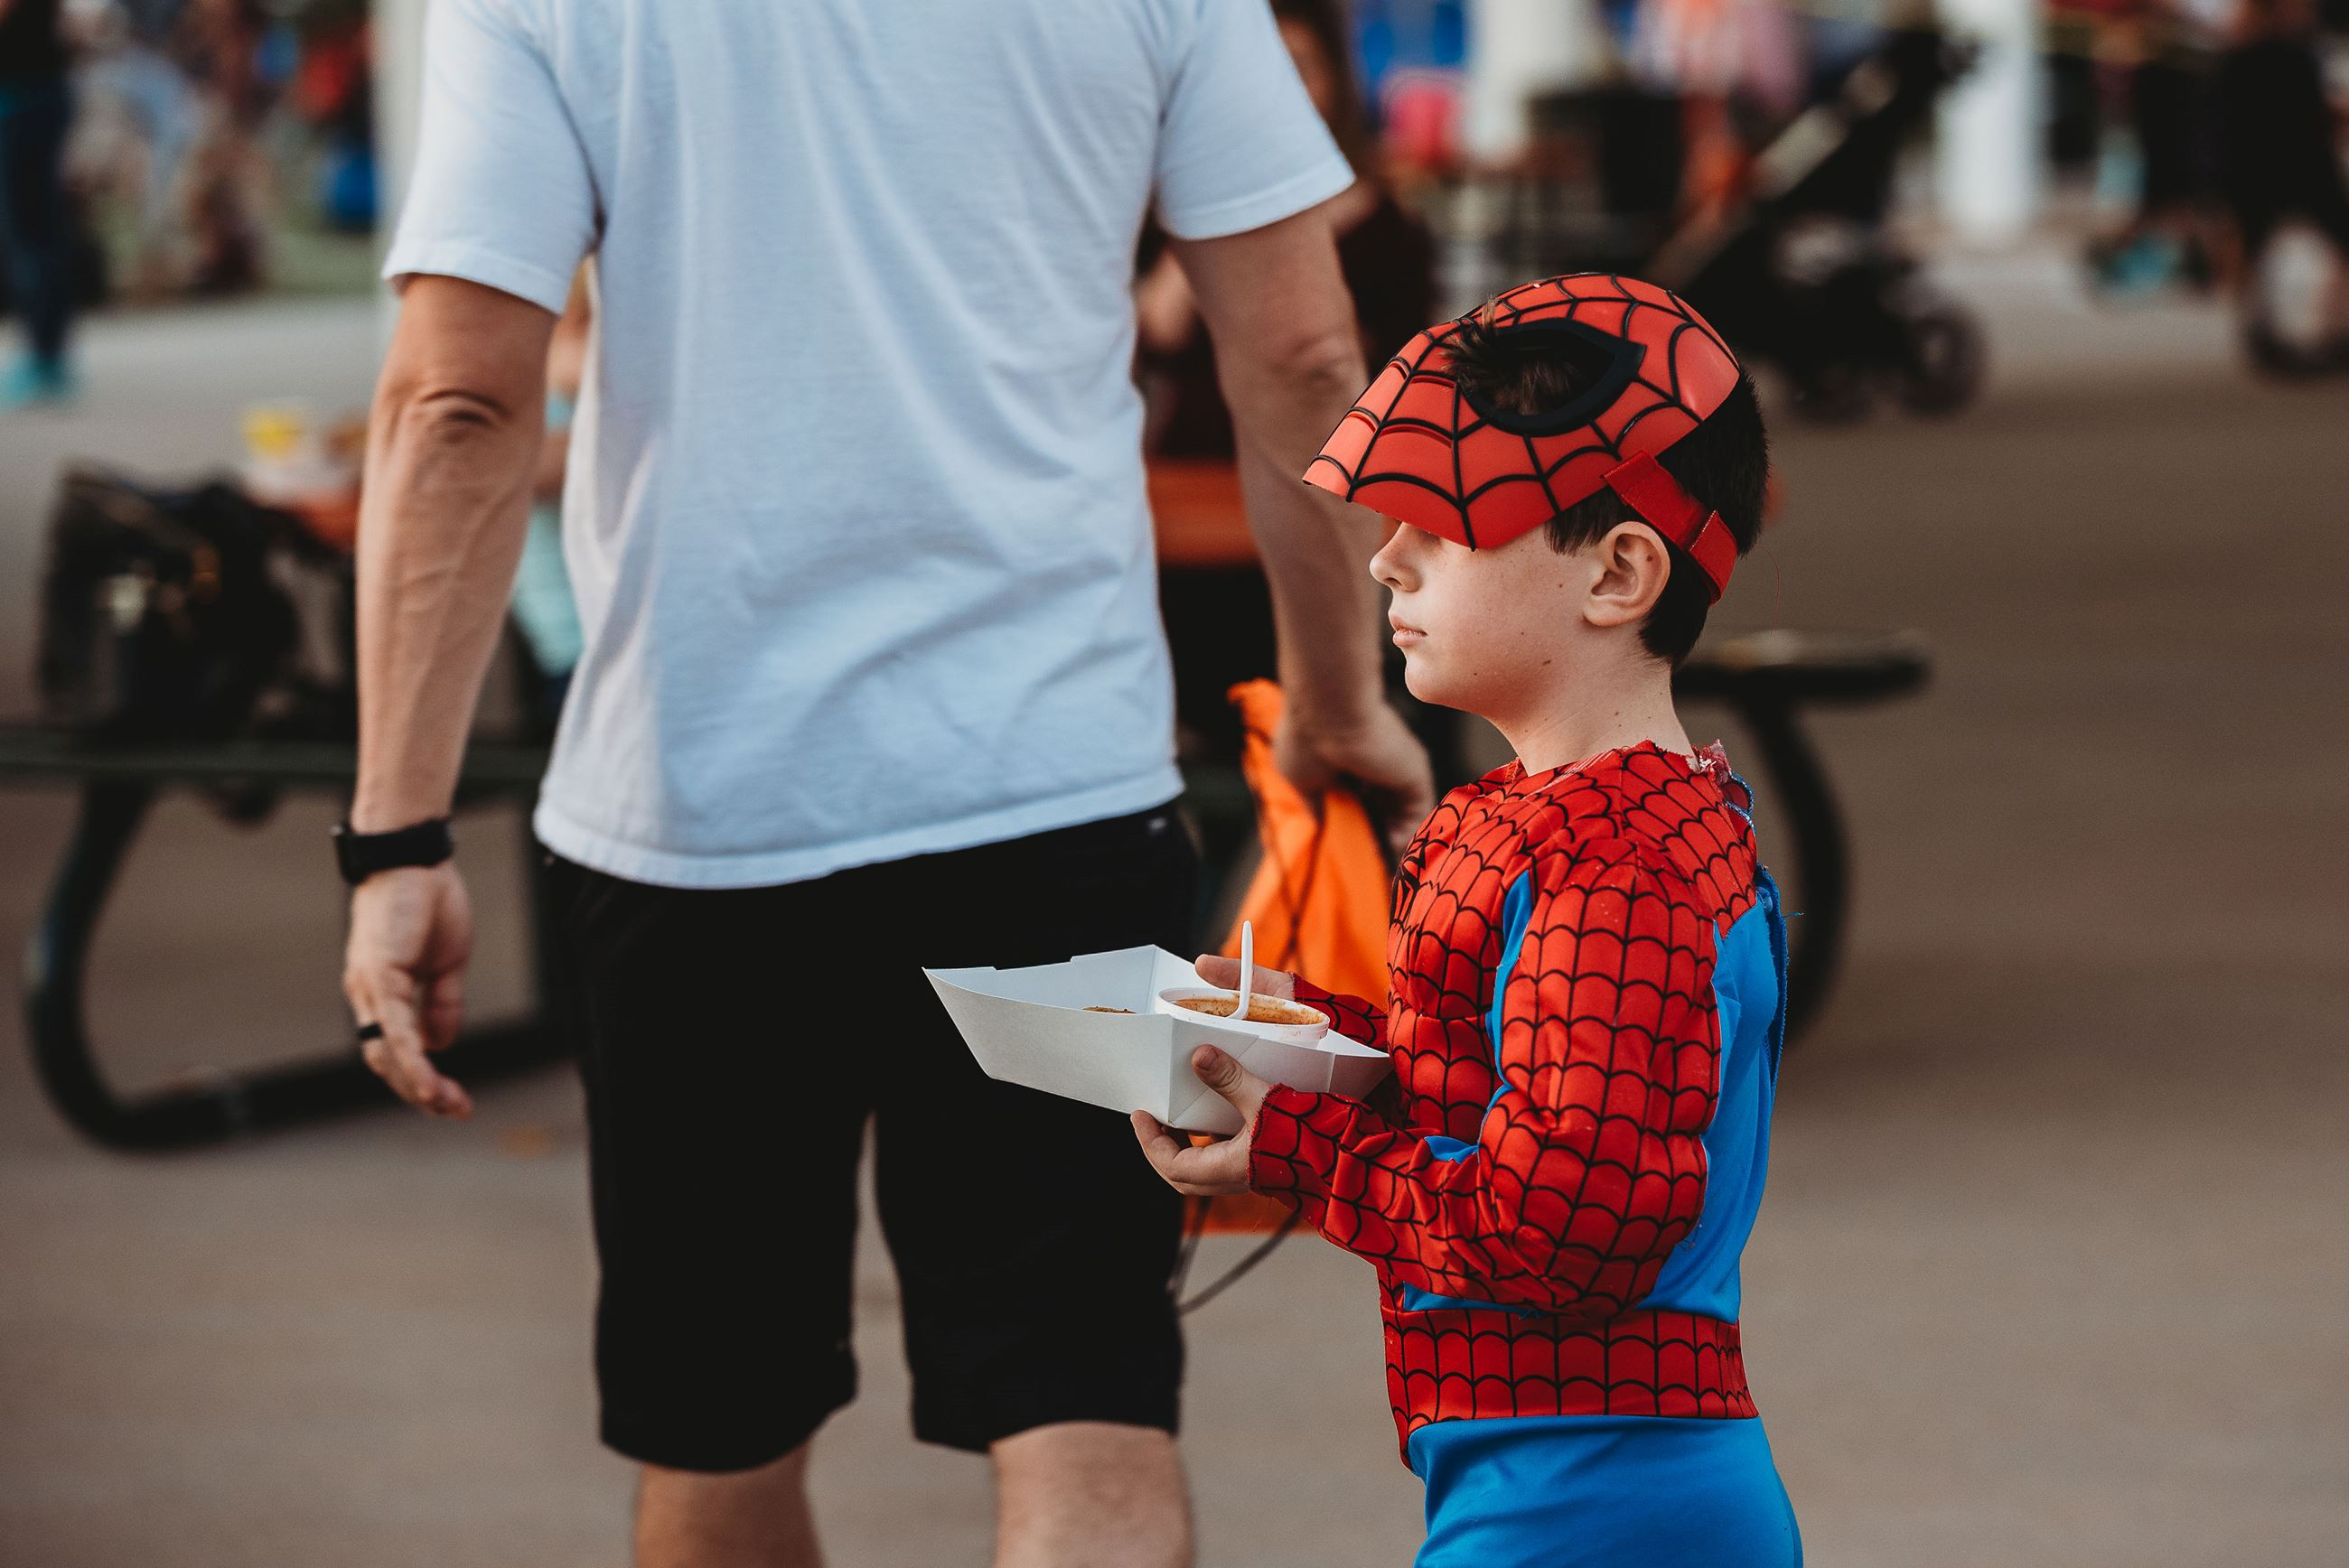 Boy Dressed as Spiderman Holding a Concessions Boat